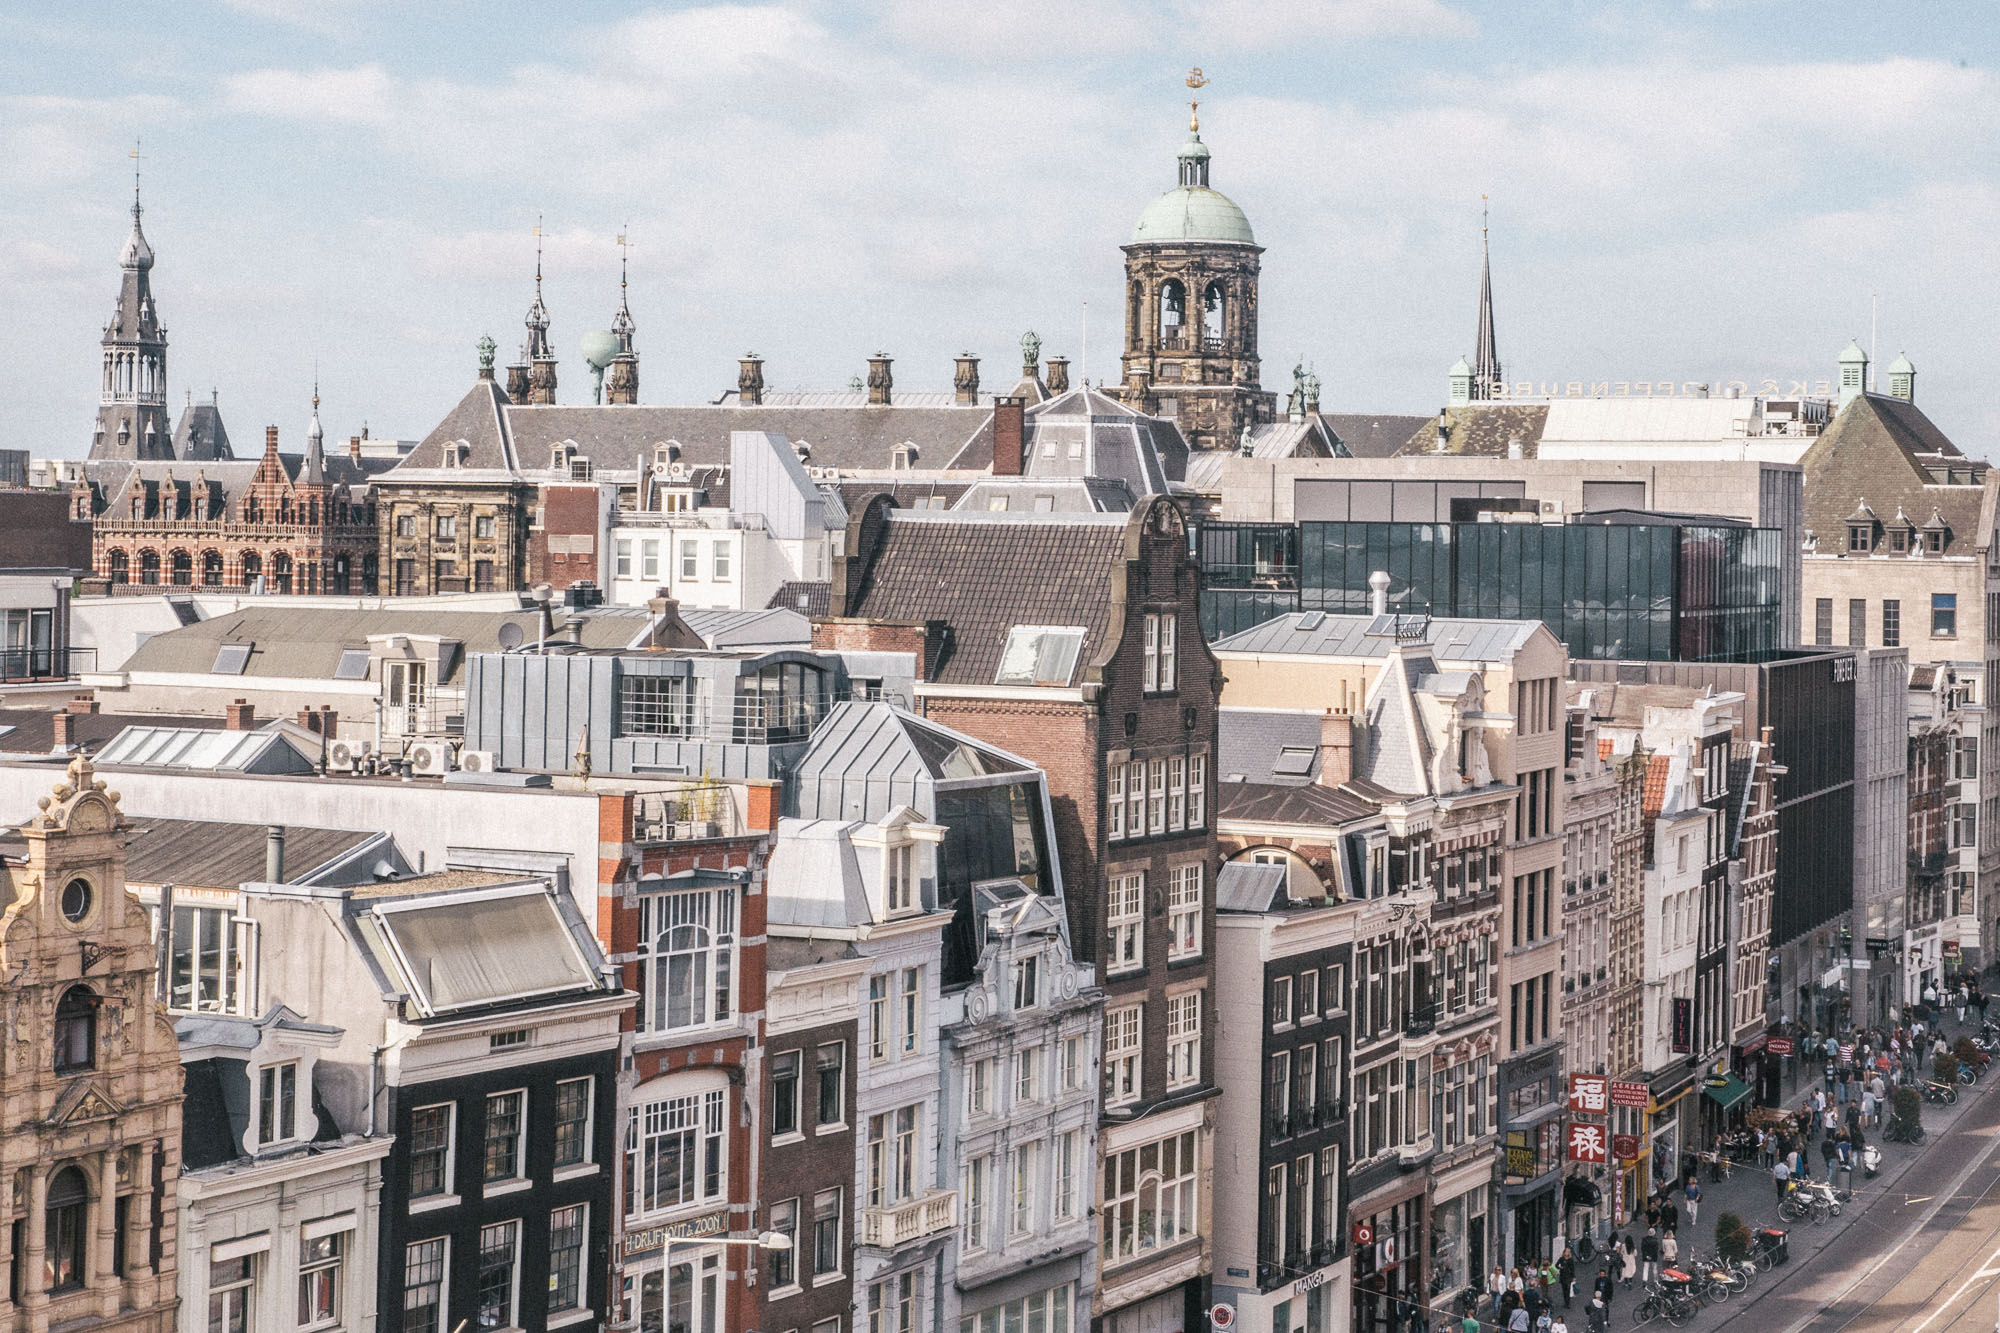 Amsterdam rooftops city view of Rokin Amsterdam, The Netherlands